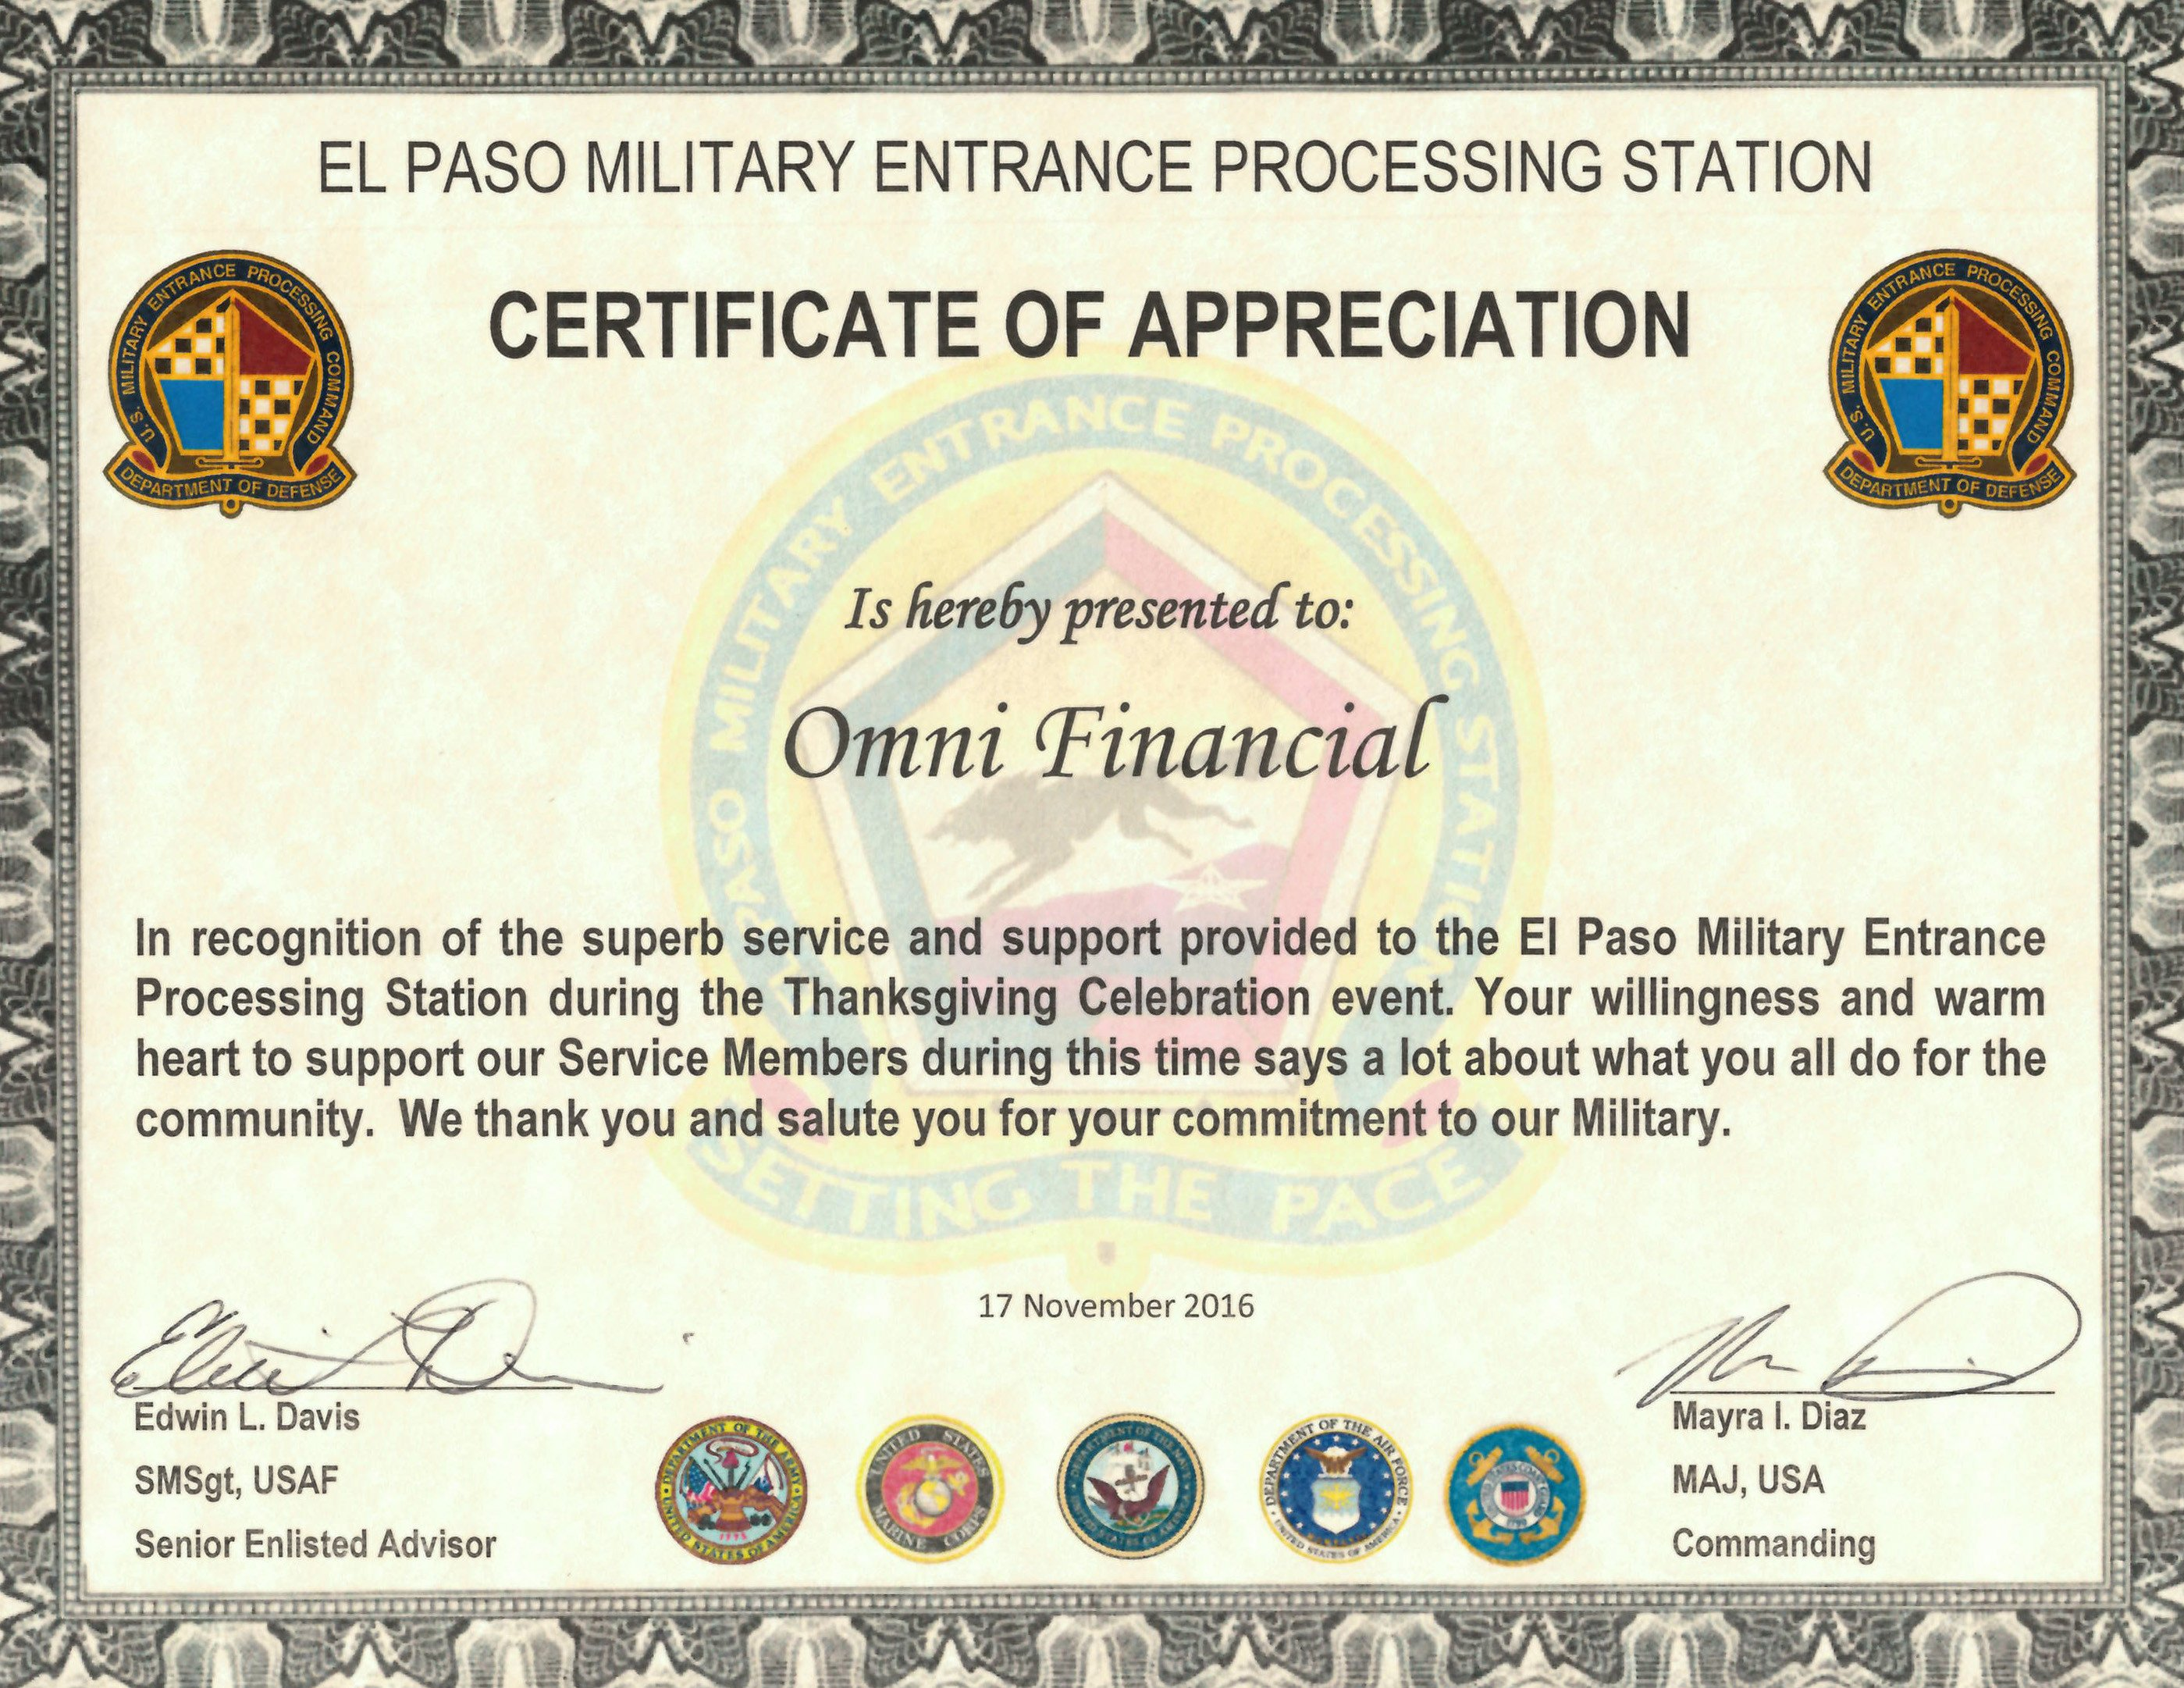 Army Certificate Of Appreciation Omni Military Loans In El Paso Tx